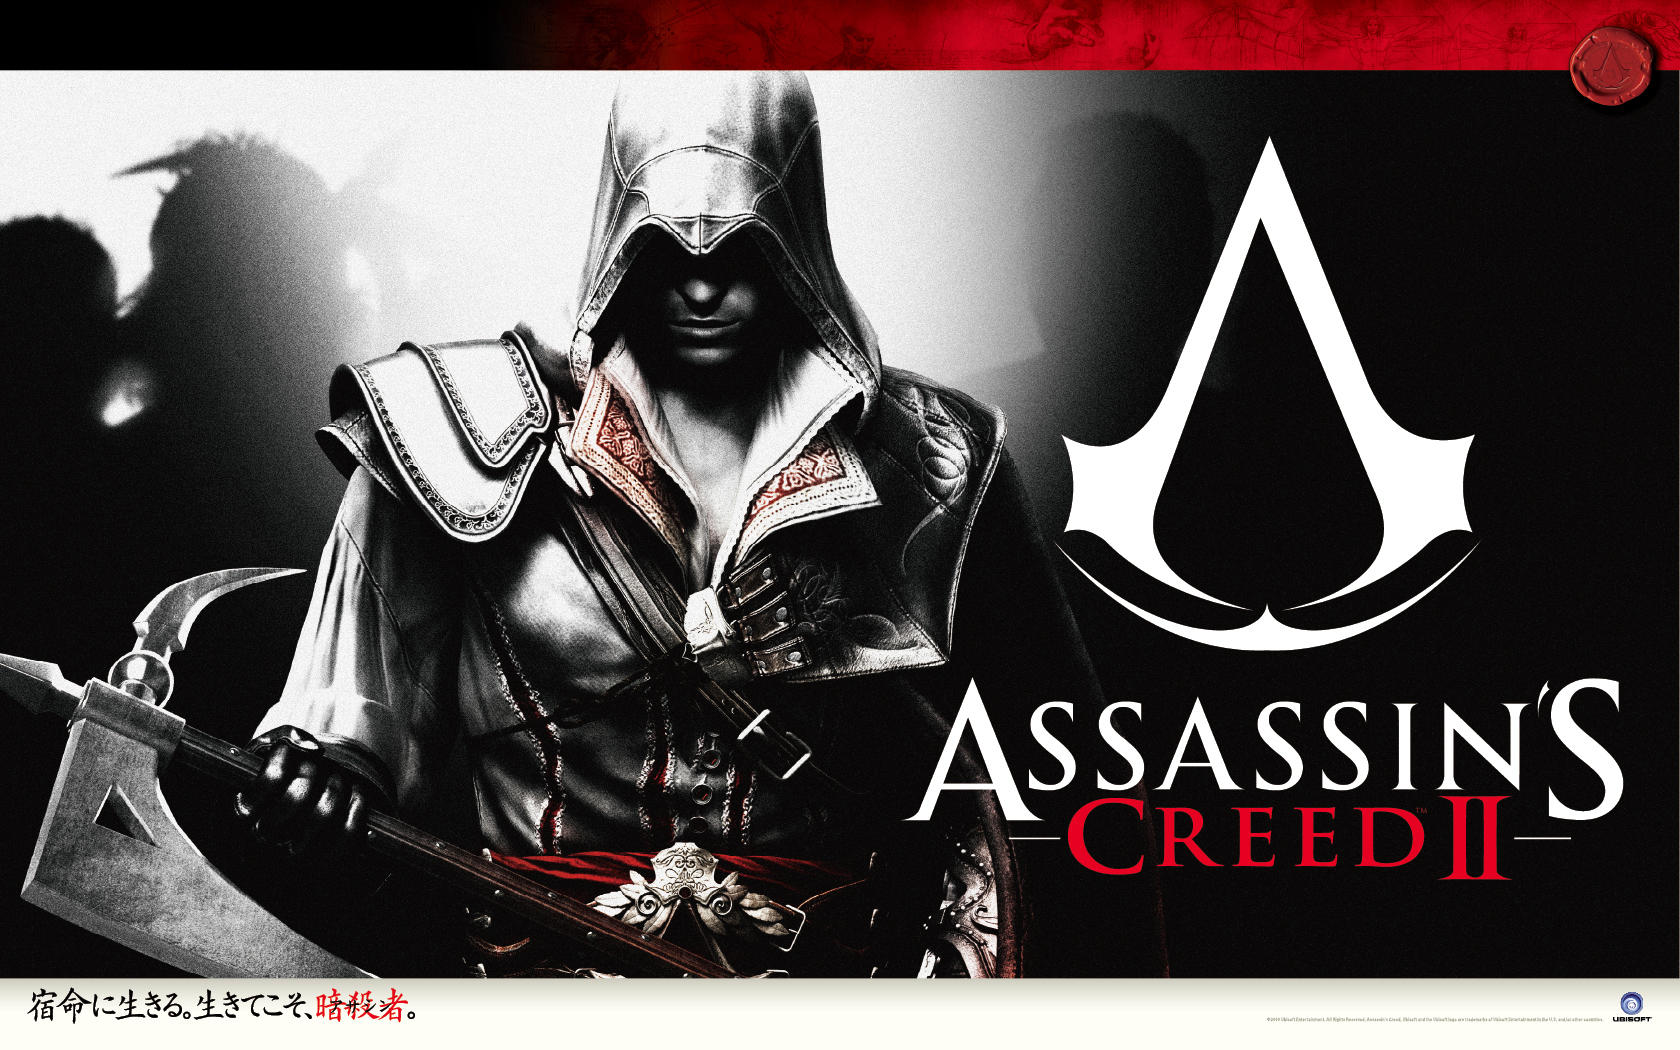 Assassins Creed 2 Newhairstylesformen2014 Com